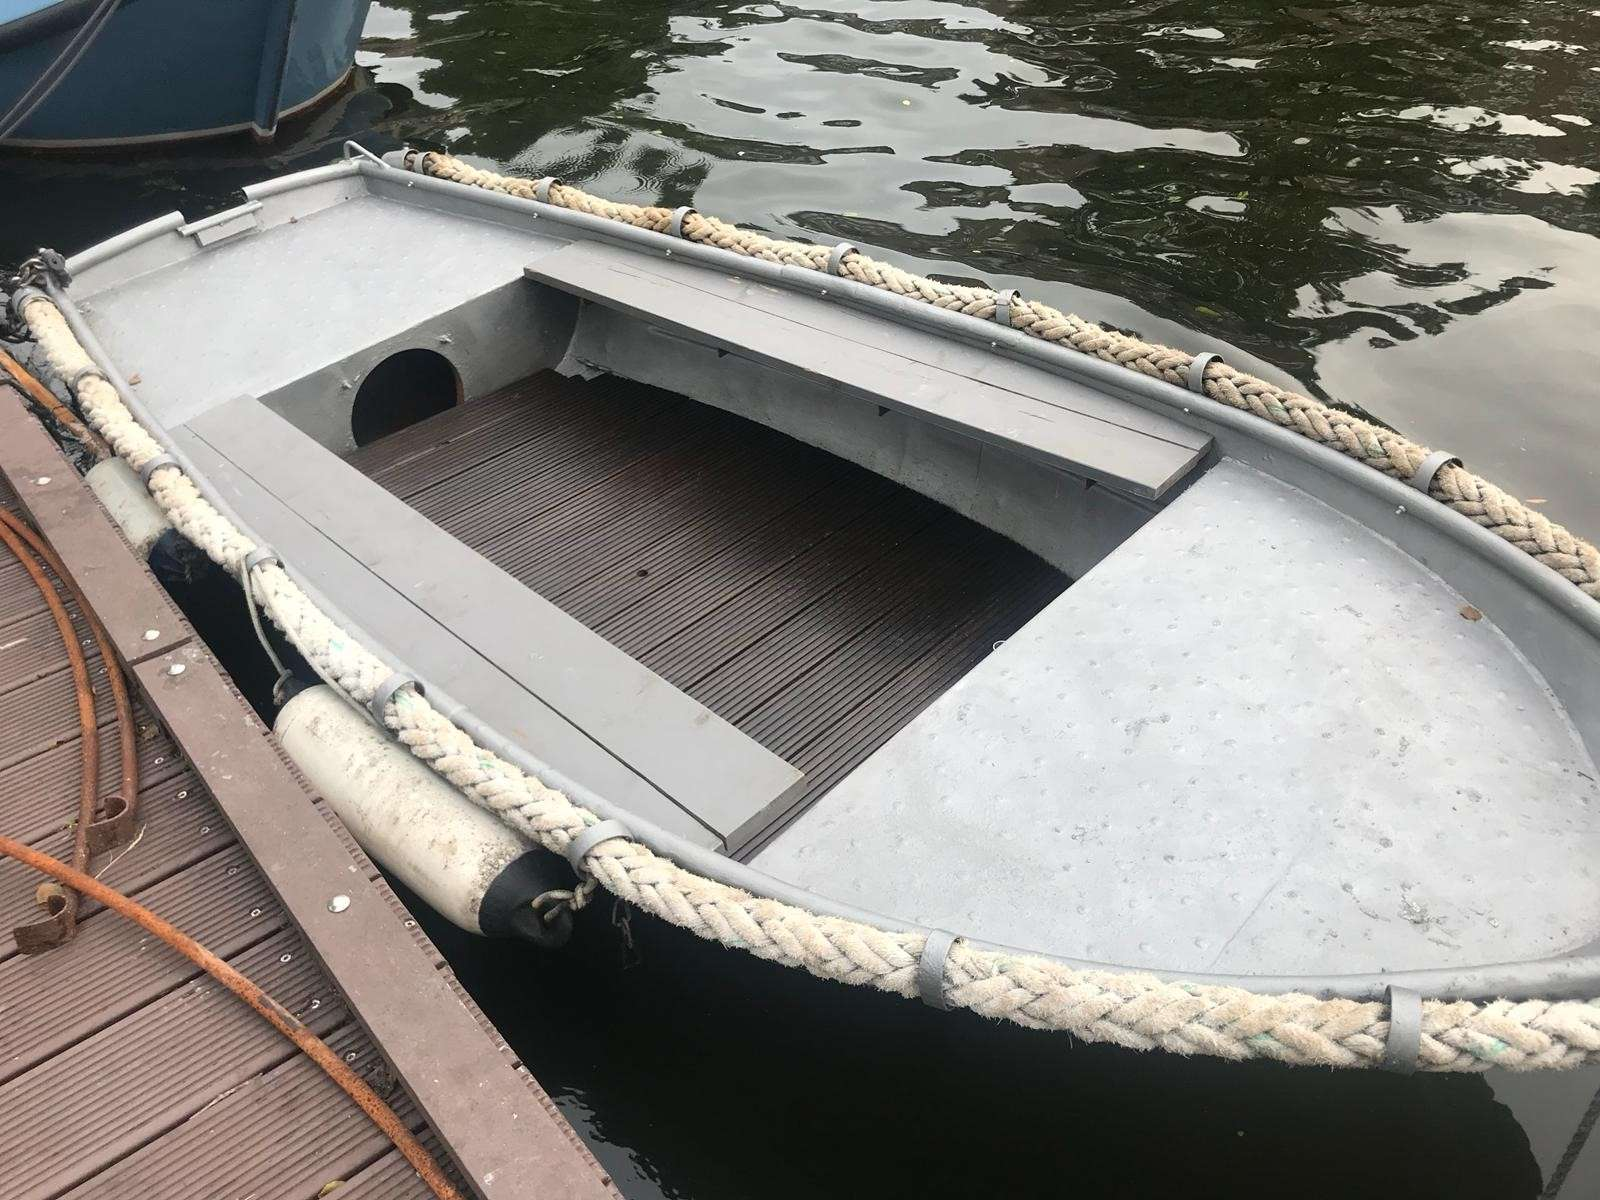 Sloep - Small Boat - 1-6 people - €25 per hour